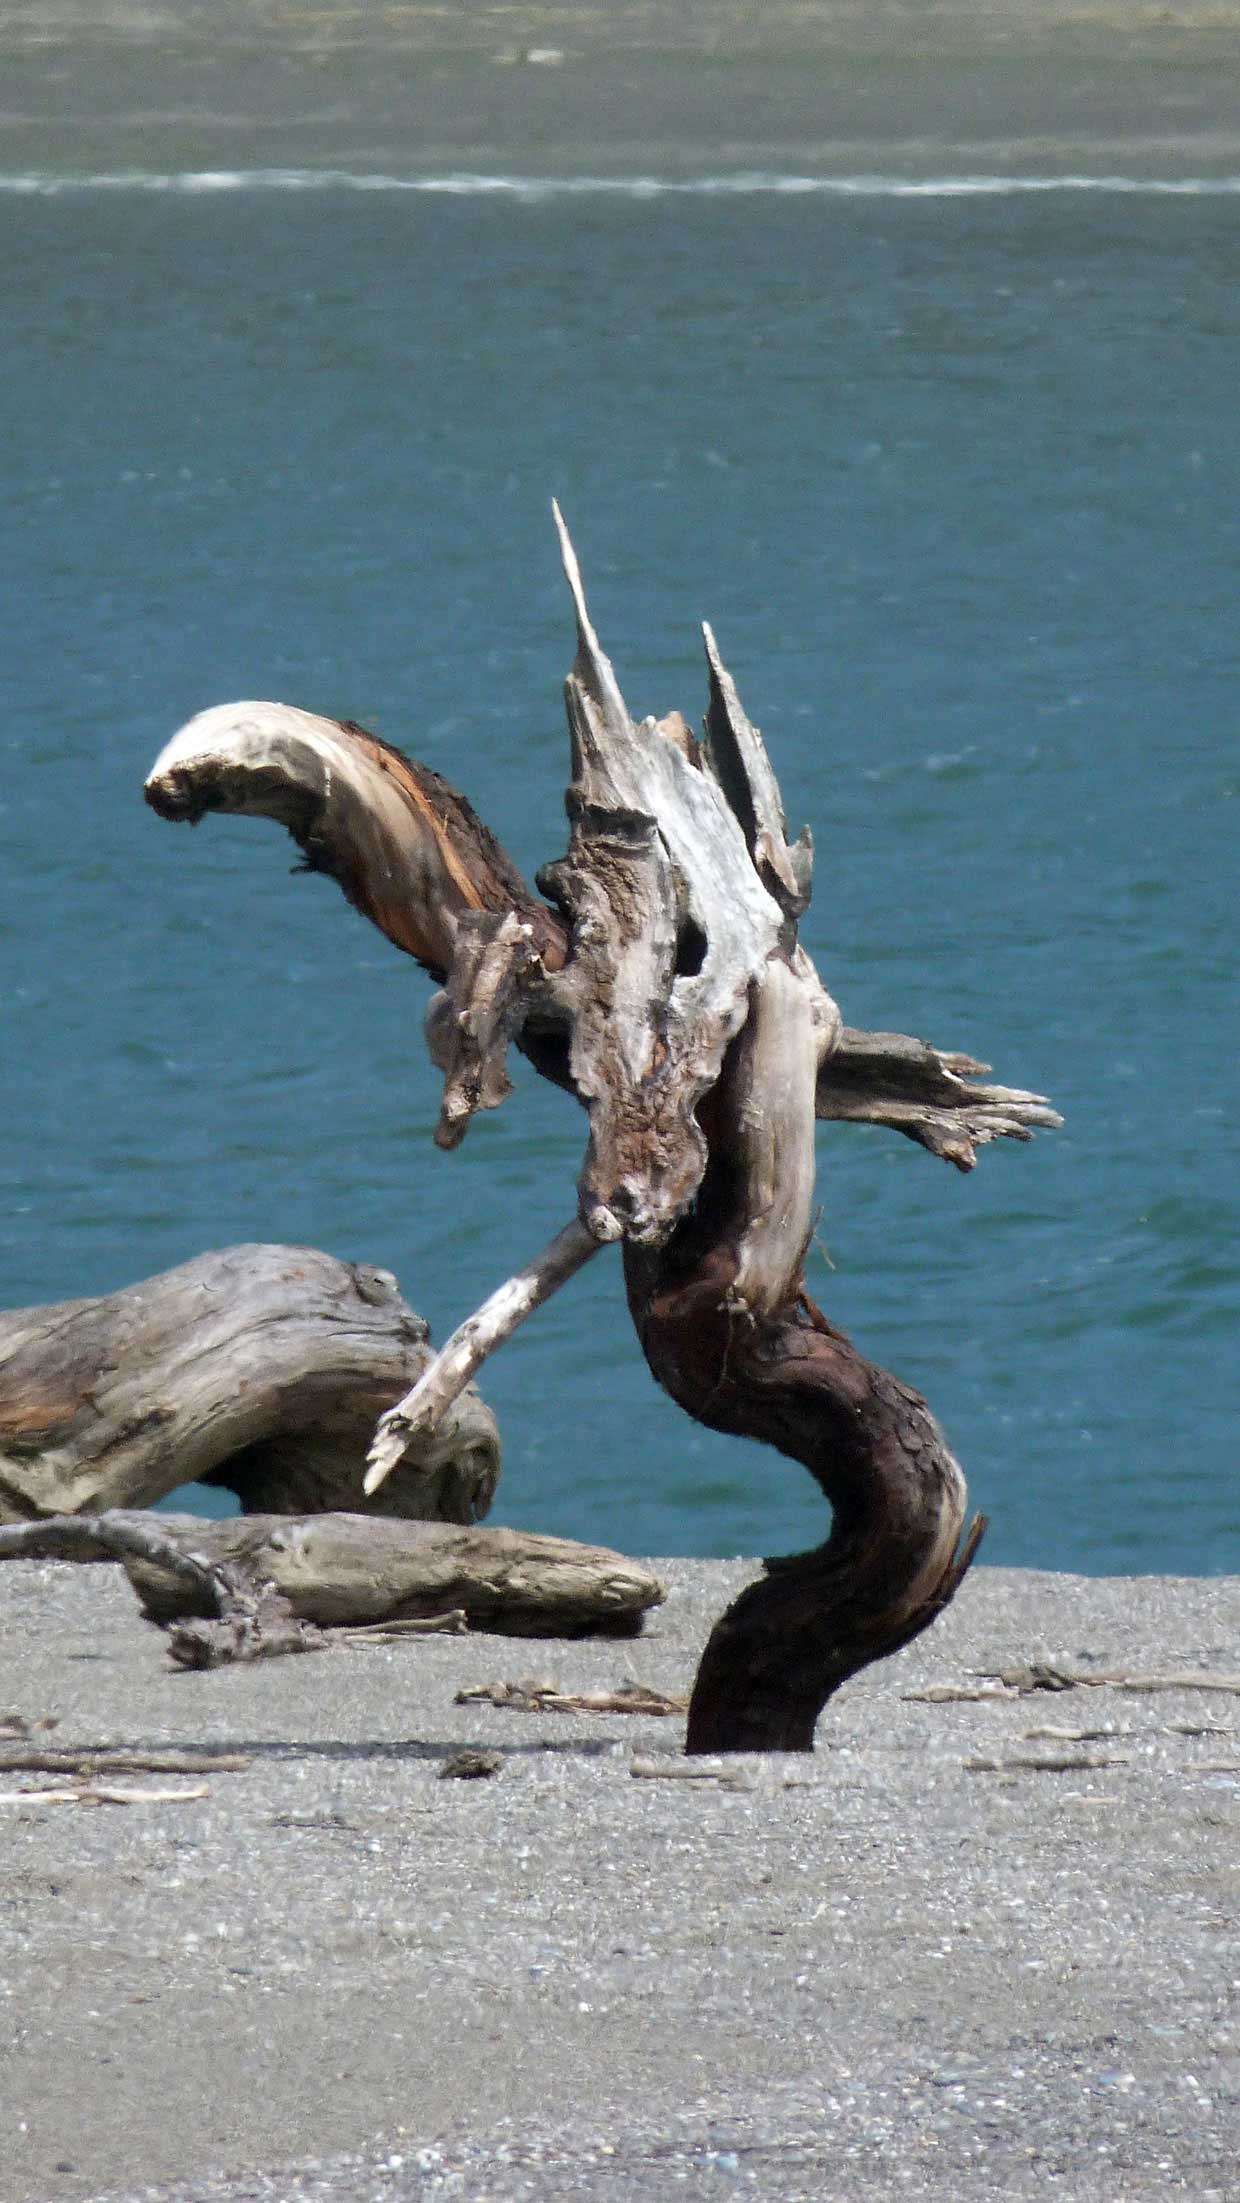 14.-A-unicorn-horse-dragon-...-no-just-wood Harbor Seals at Goat Rock Beach, Sonoma County